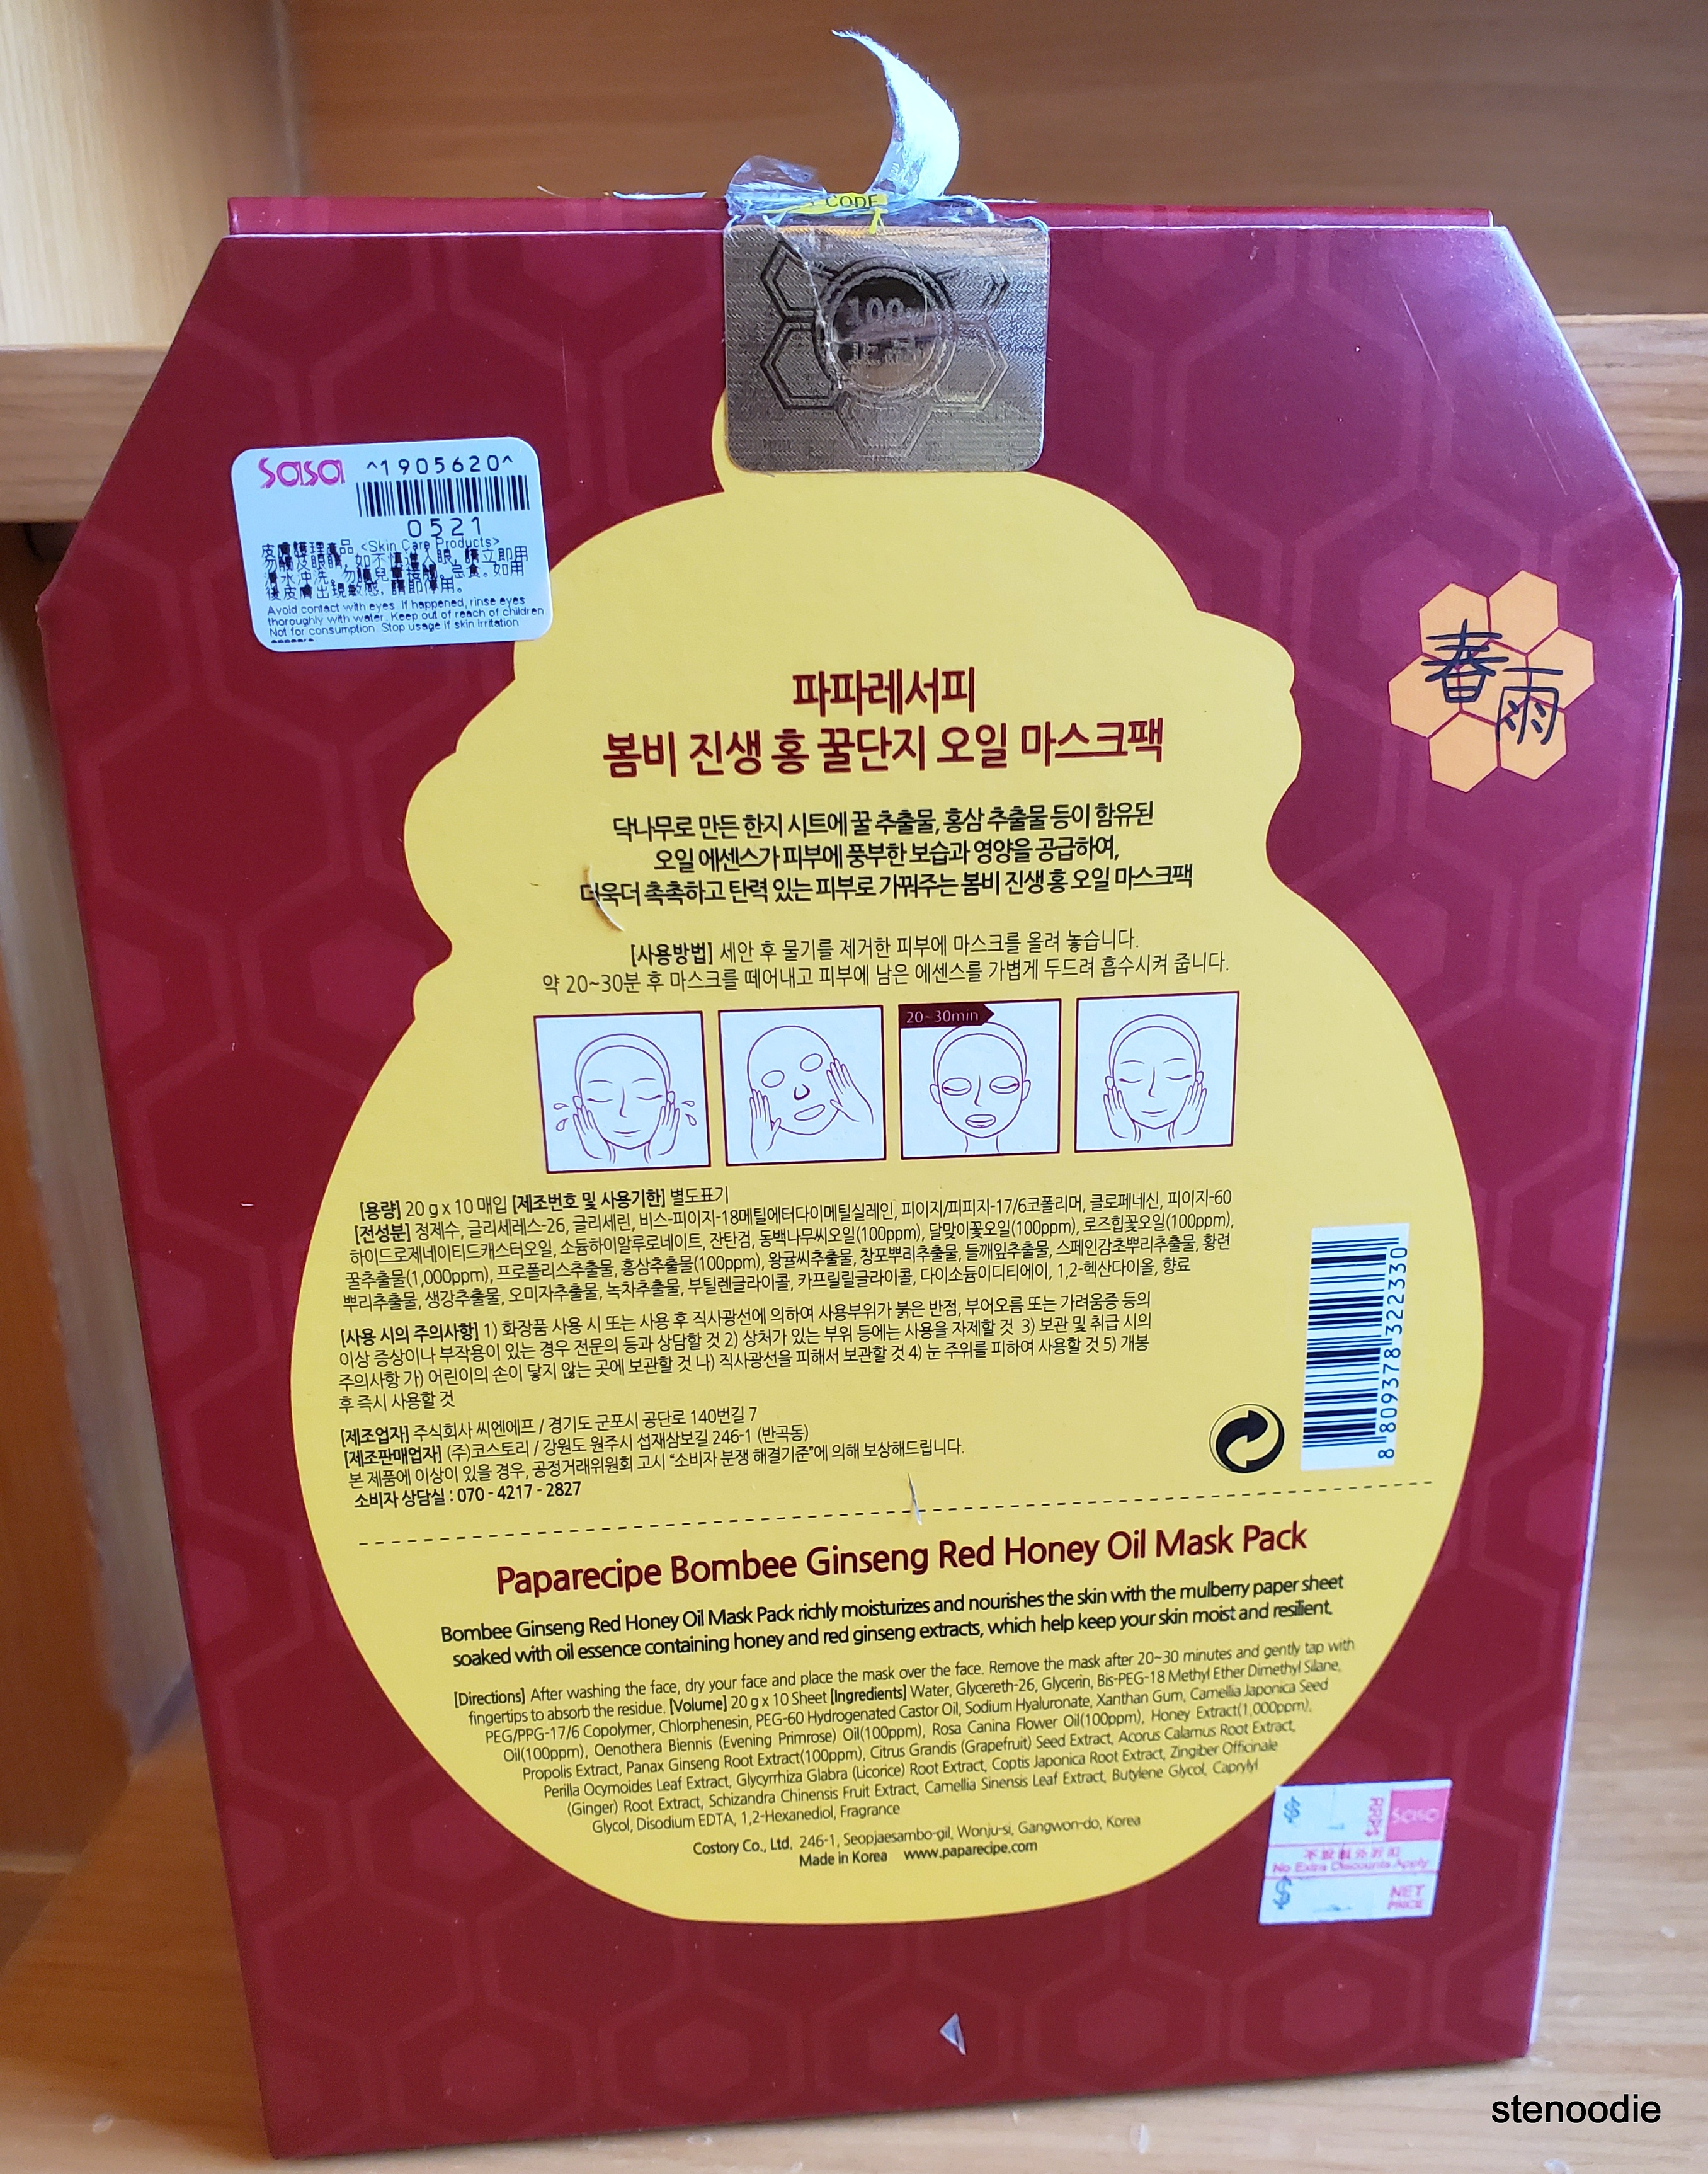 Papa Recipe Bombee Ginseng Red Honey Oil Mask